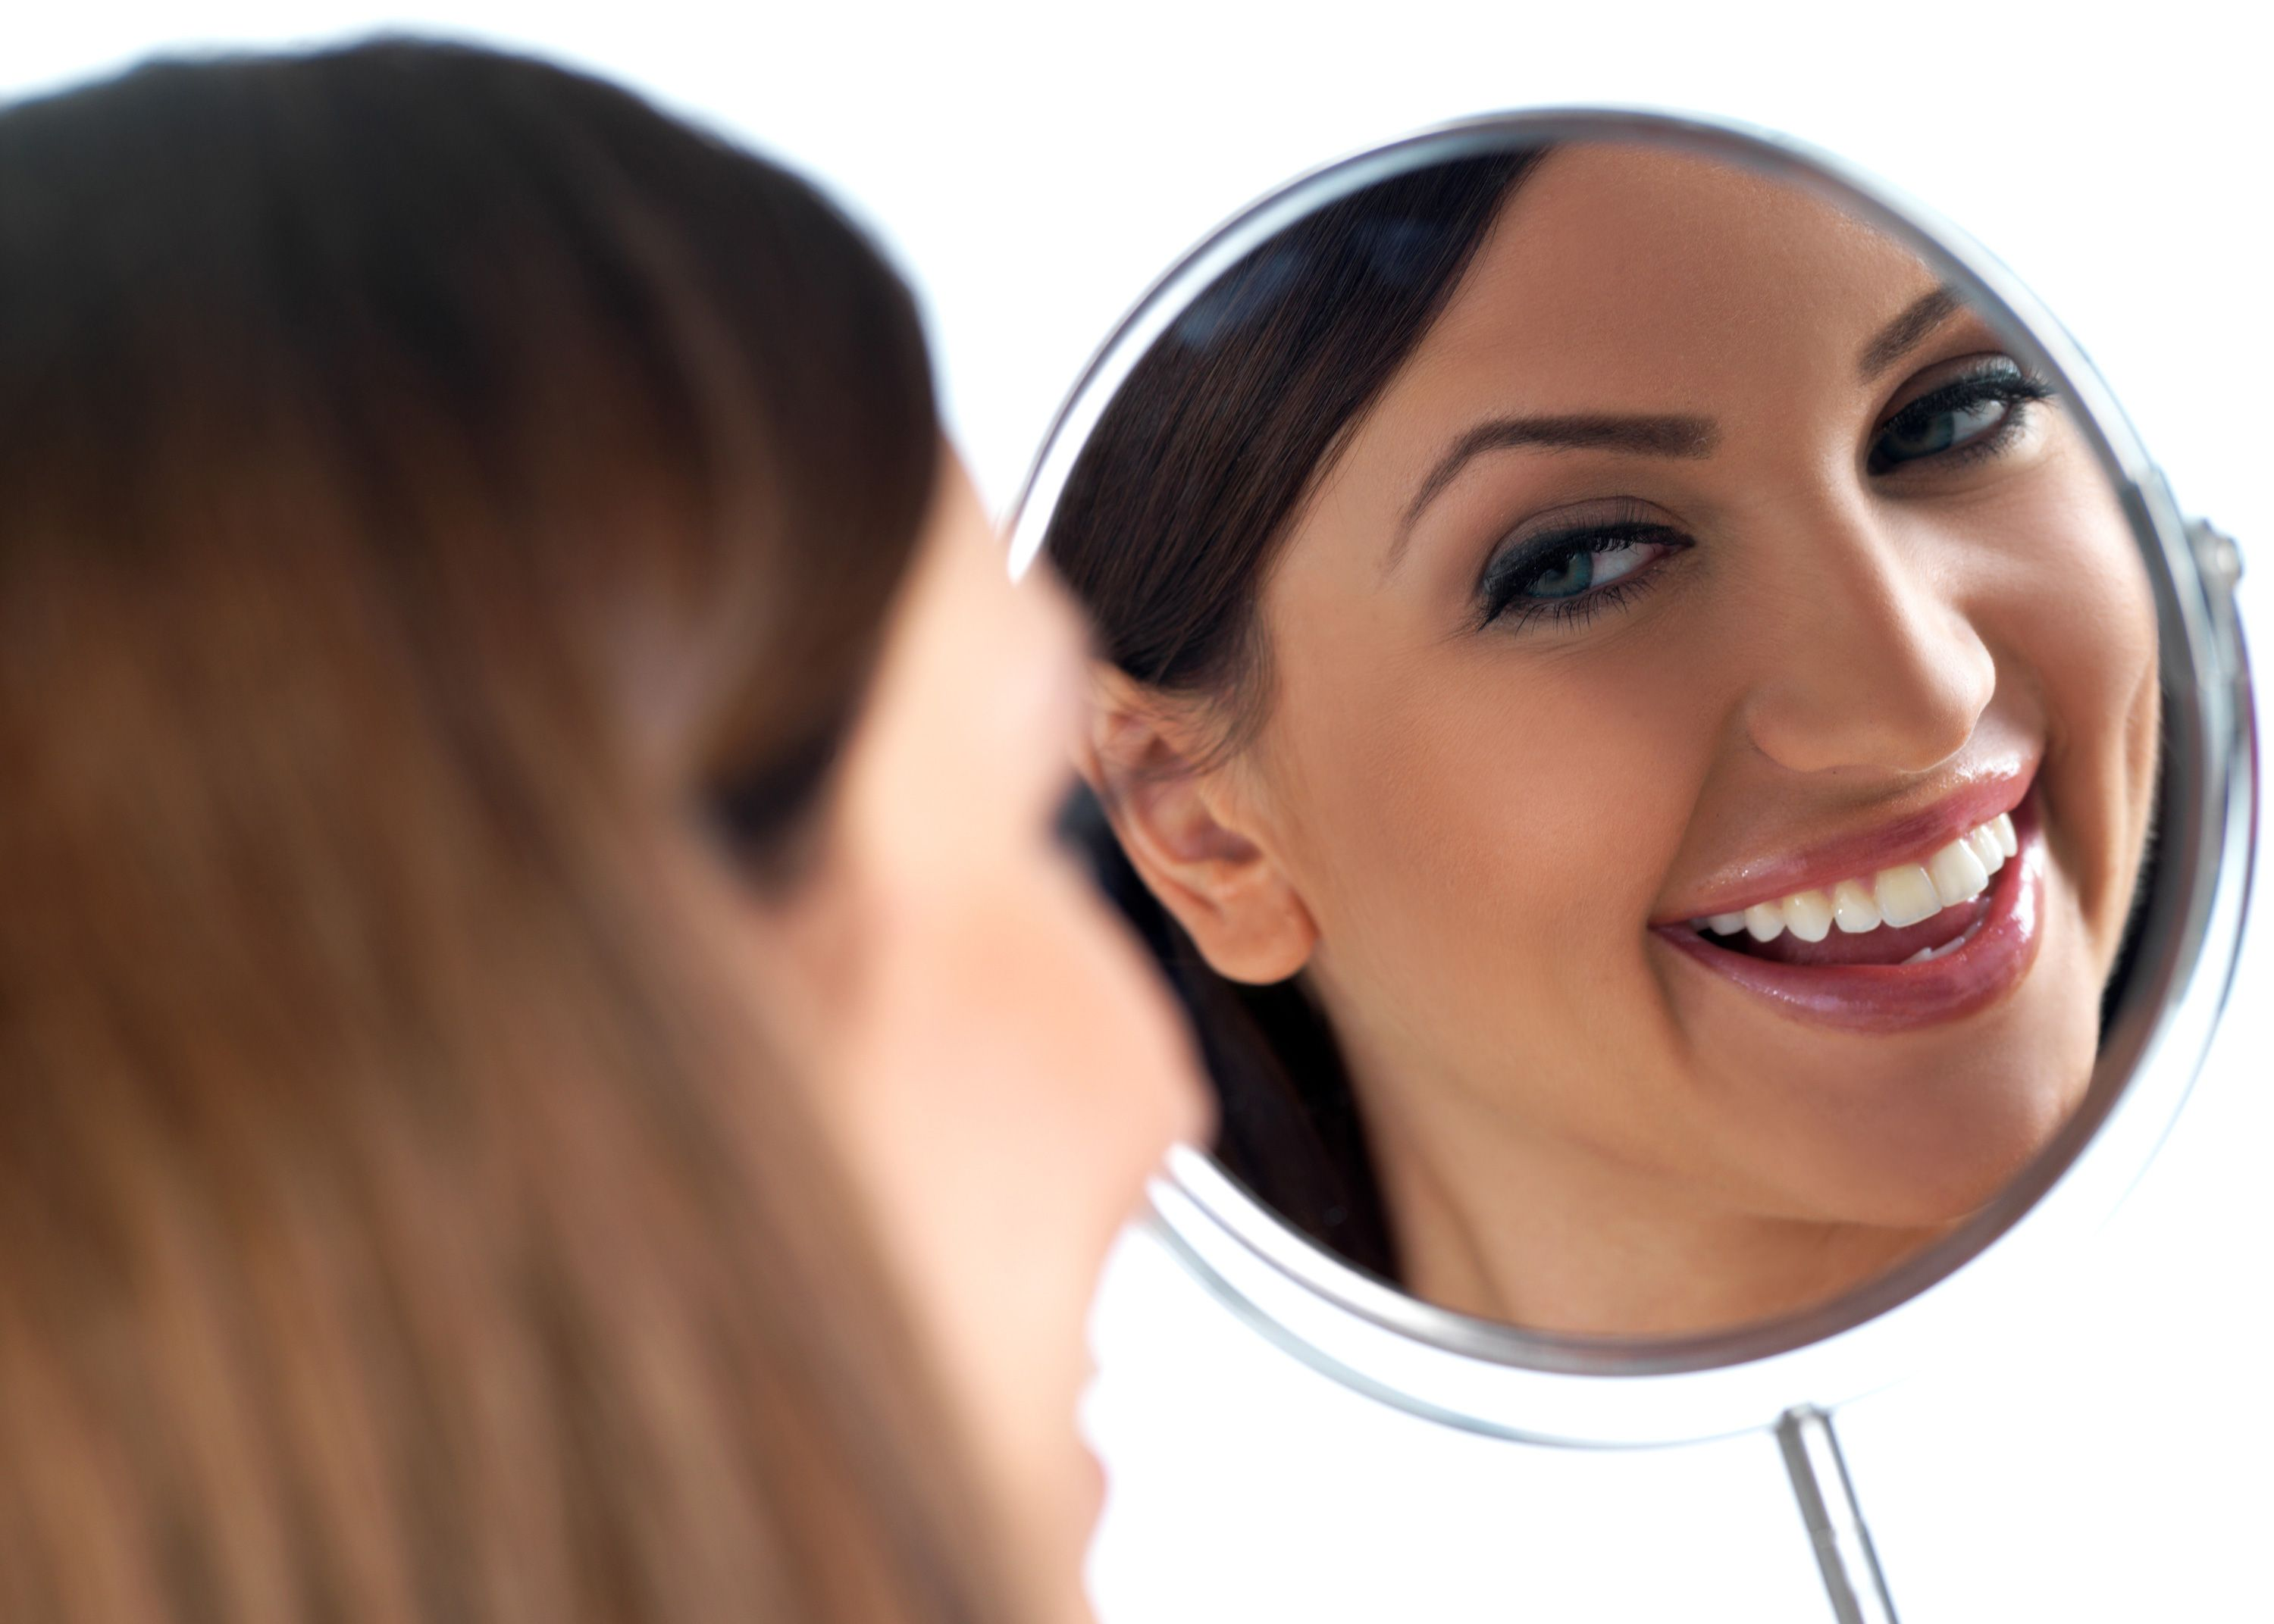 Young woman smiling in a handheld mirror